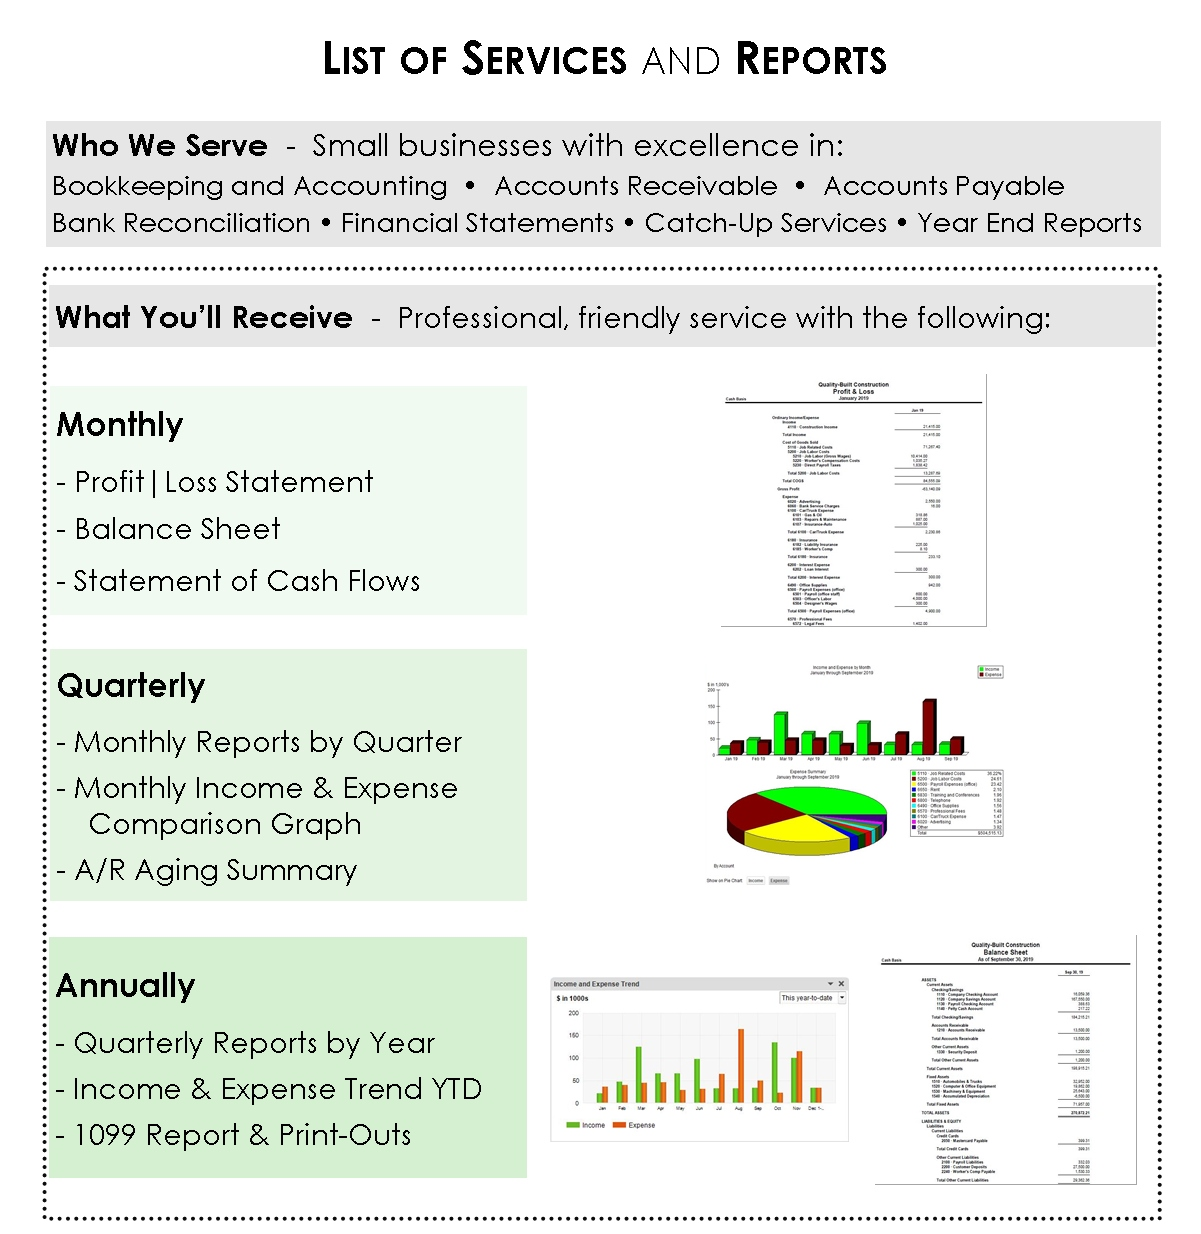 1a-Client List of Services-by Report-OKC-CROPPED.jpg